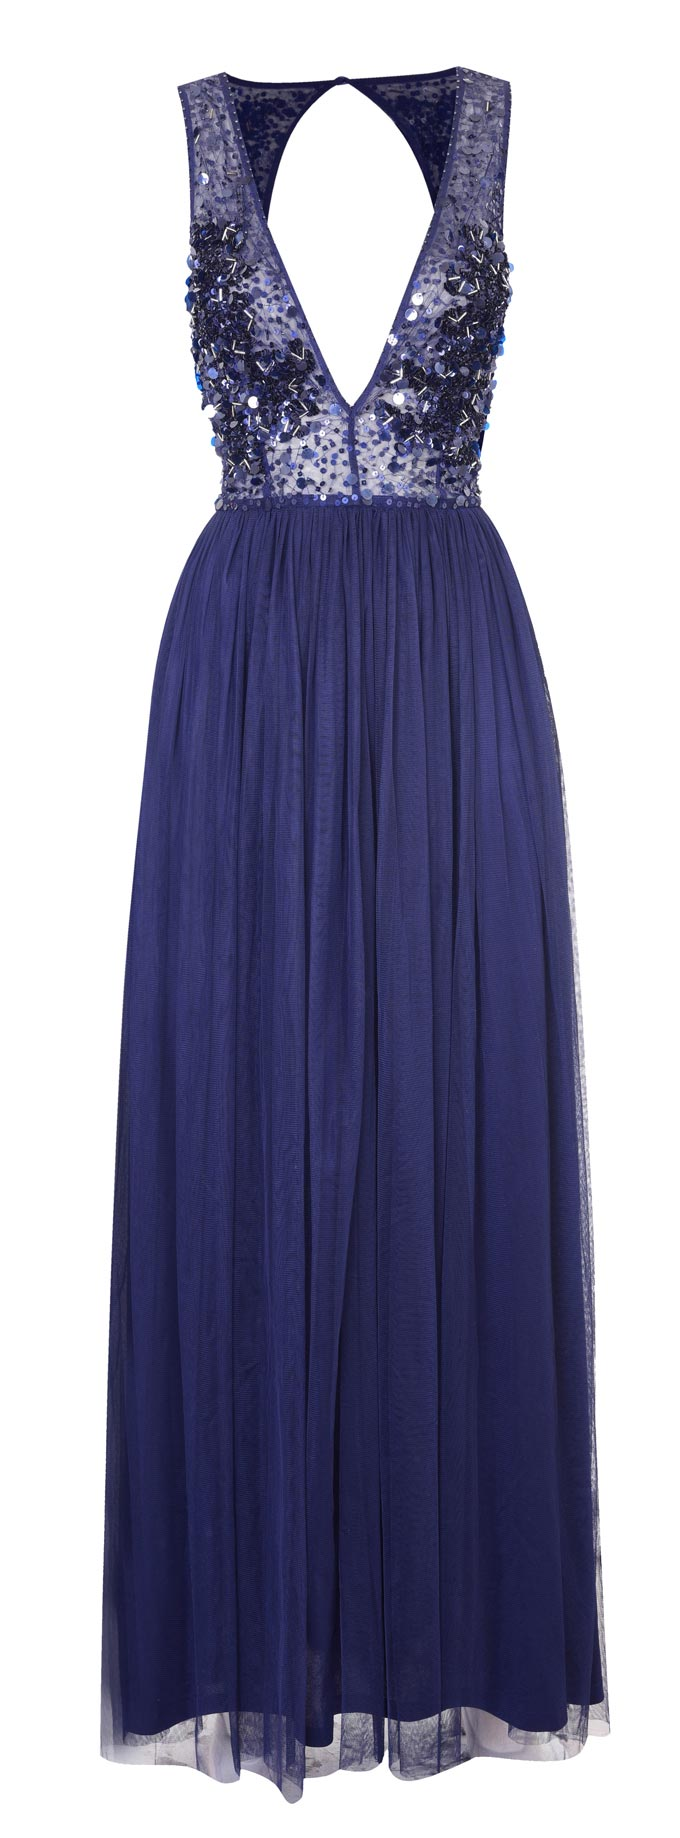 An cobalt blue dress with a sexy neckline. Image by Debenhams.